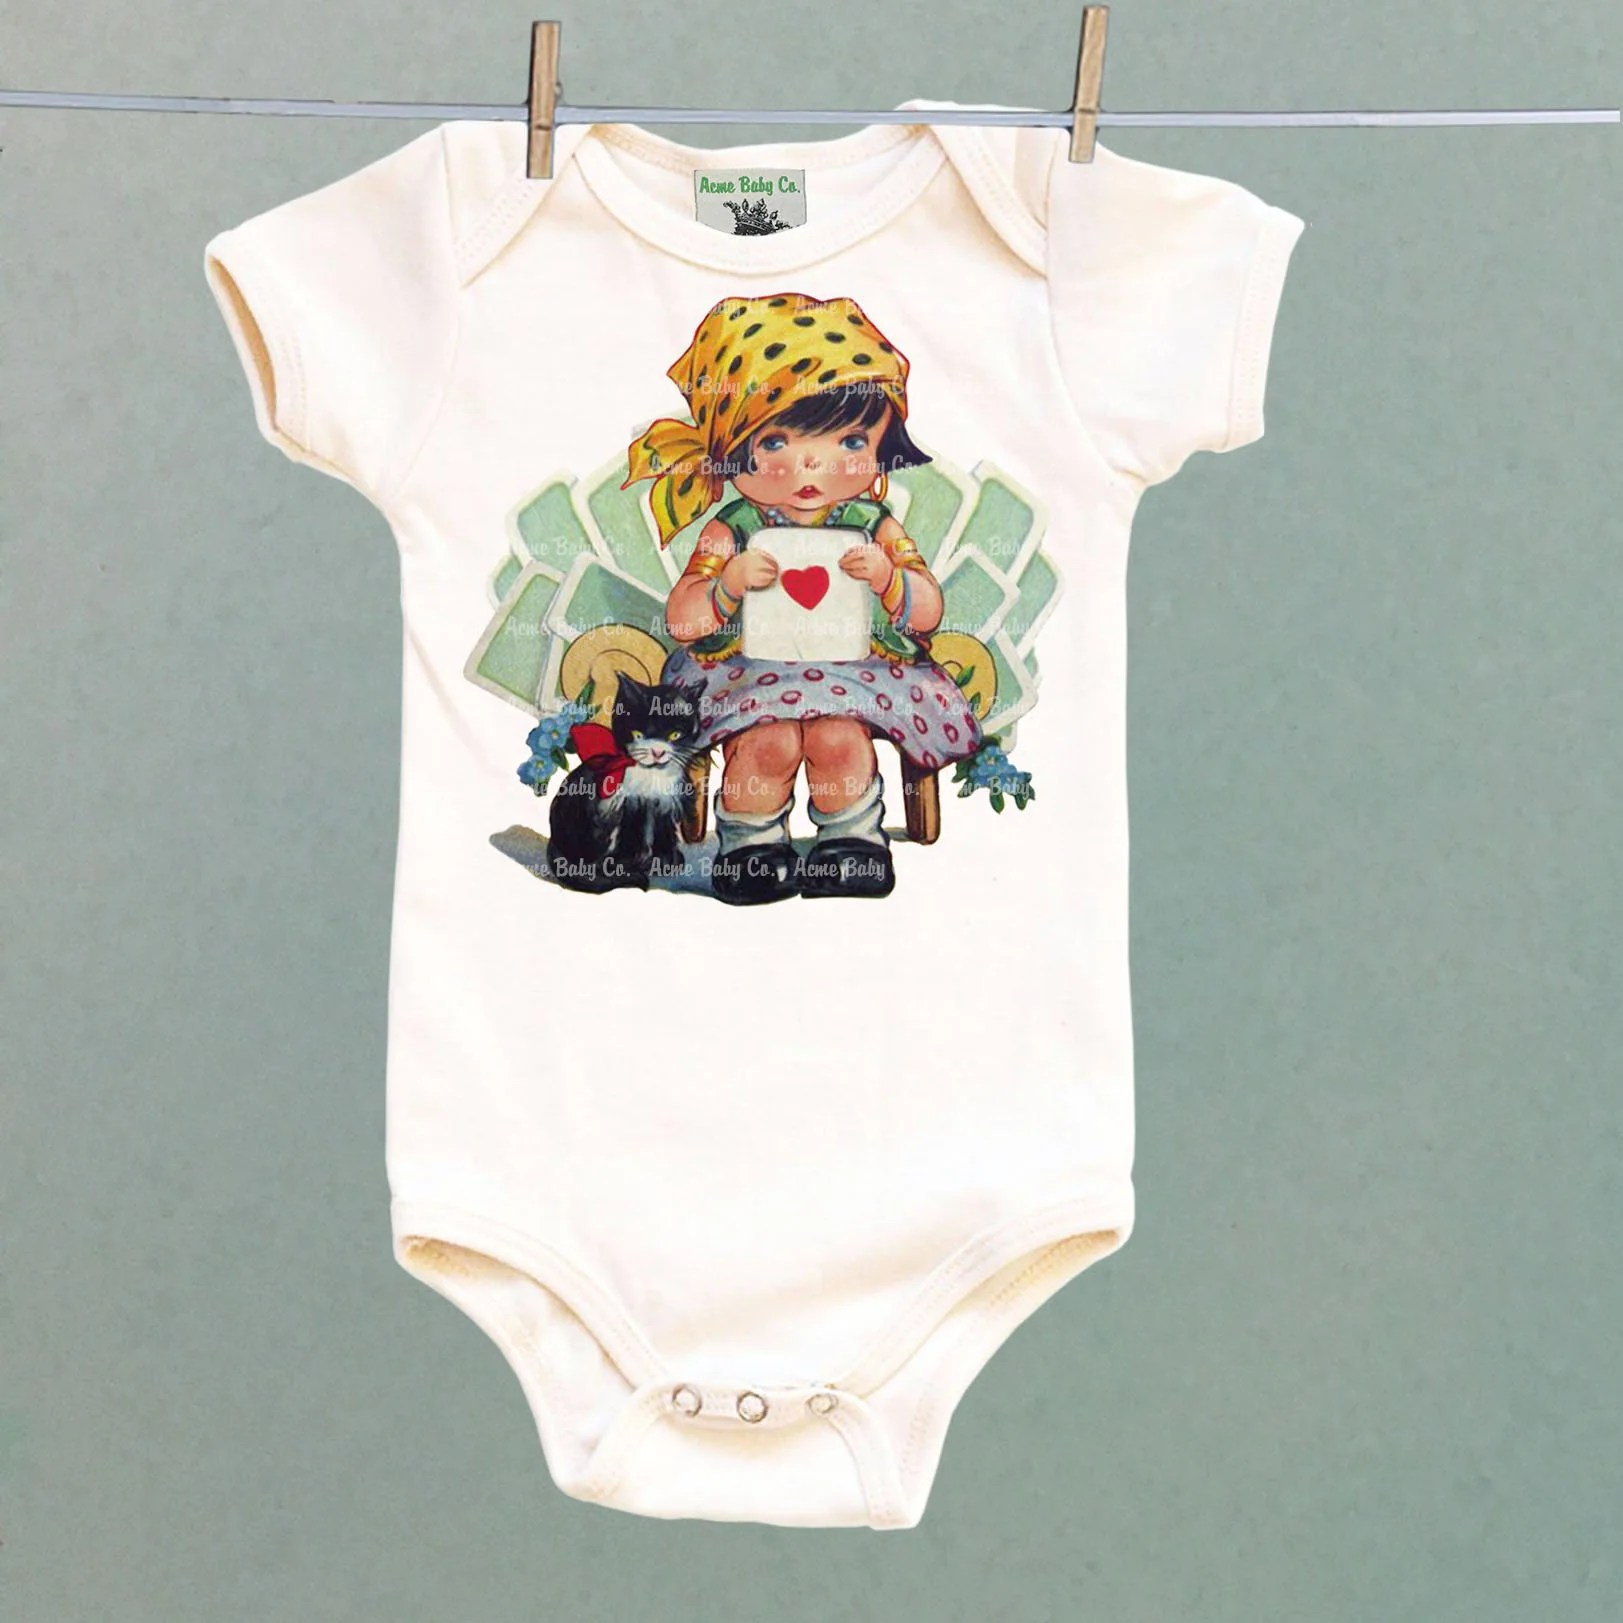 Baby Teller Shower Gift Retro Baby Gypsy Girl Shirt Gypsy One Piece Fortune Teller Baby Gift Baby Layette Roma Baby Short Sleeve Long Sleeve